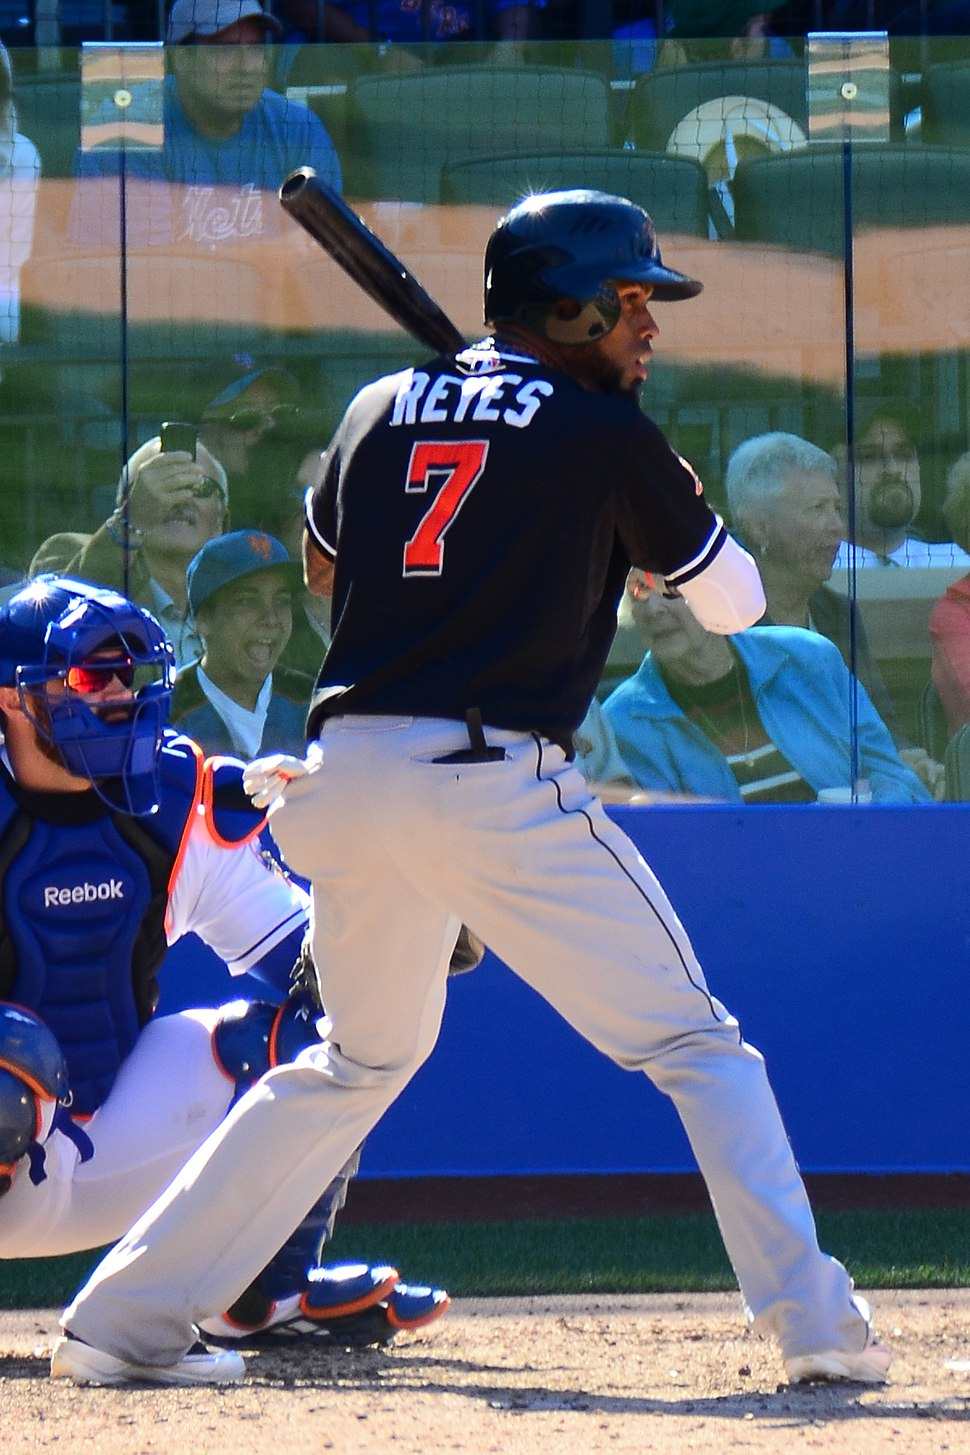 José Reyes on September 23, 2012